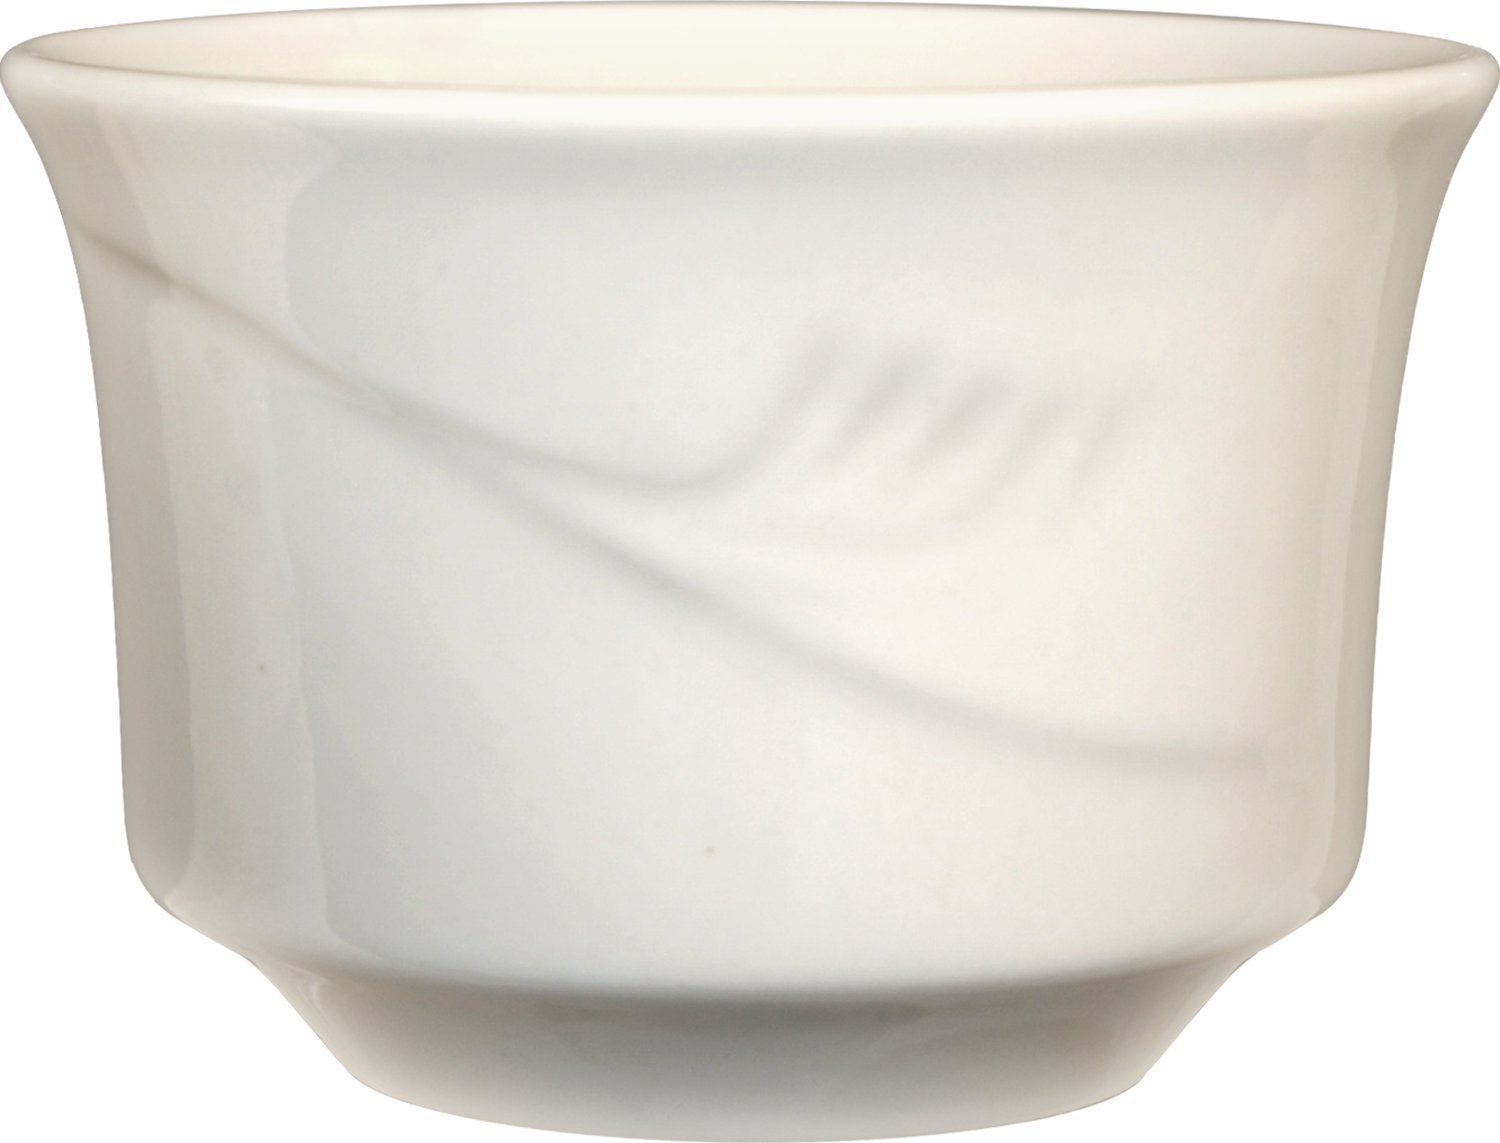 ITI - NP-4 NEWPORT  Bouillon American White 3-5/8 Inch - 7.5 Ounce, 36-piece, off white, Embossed Pattern